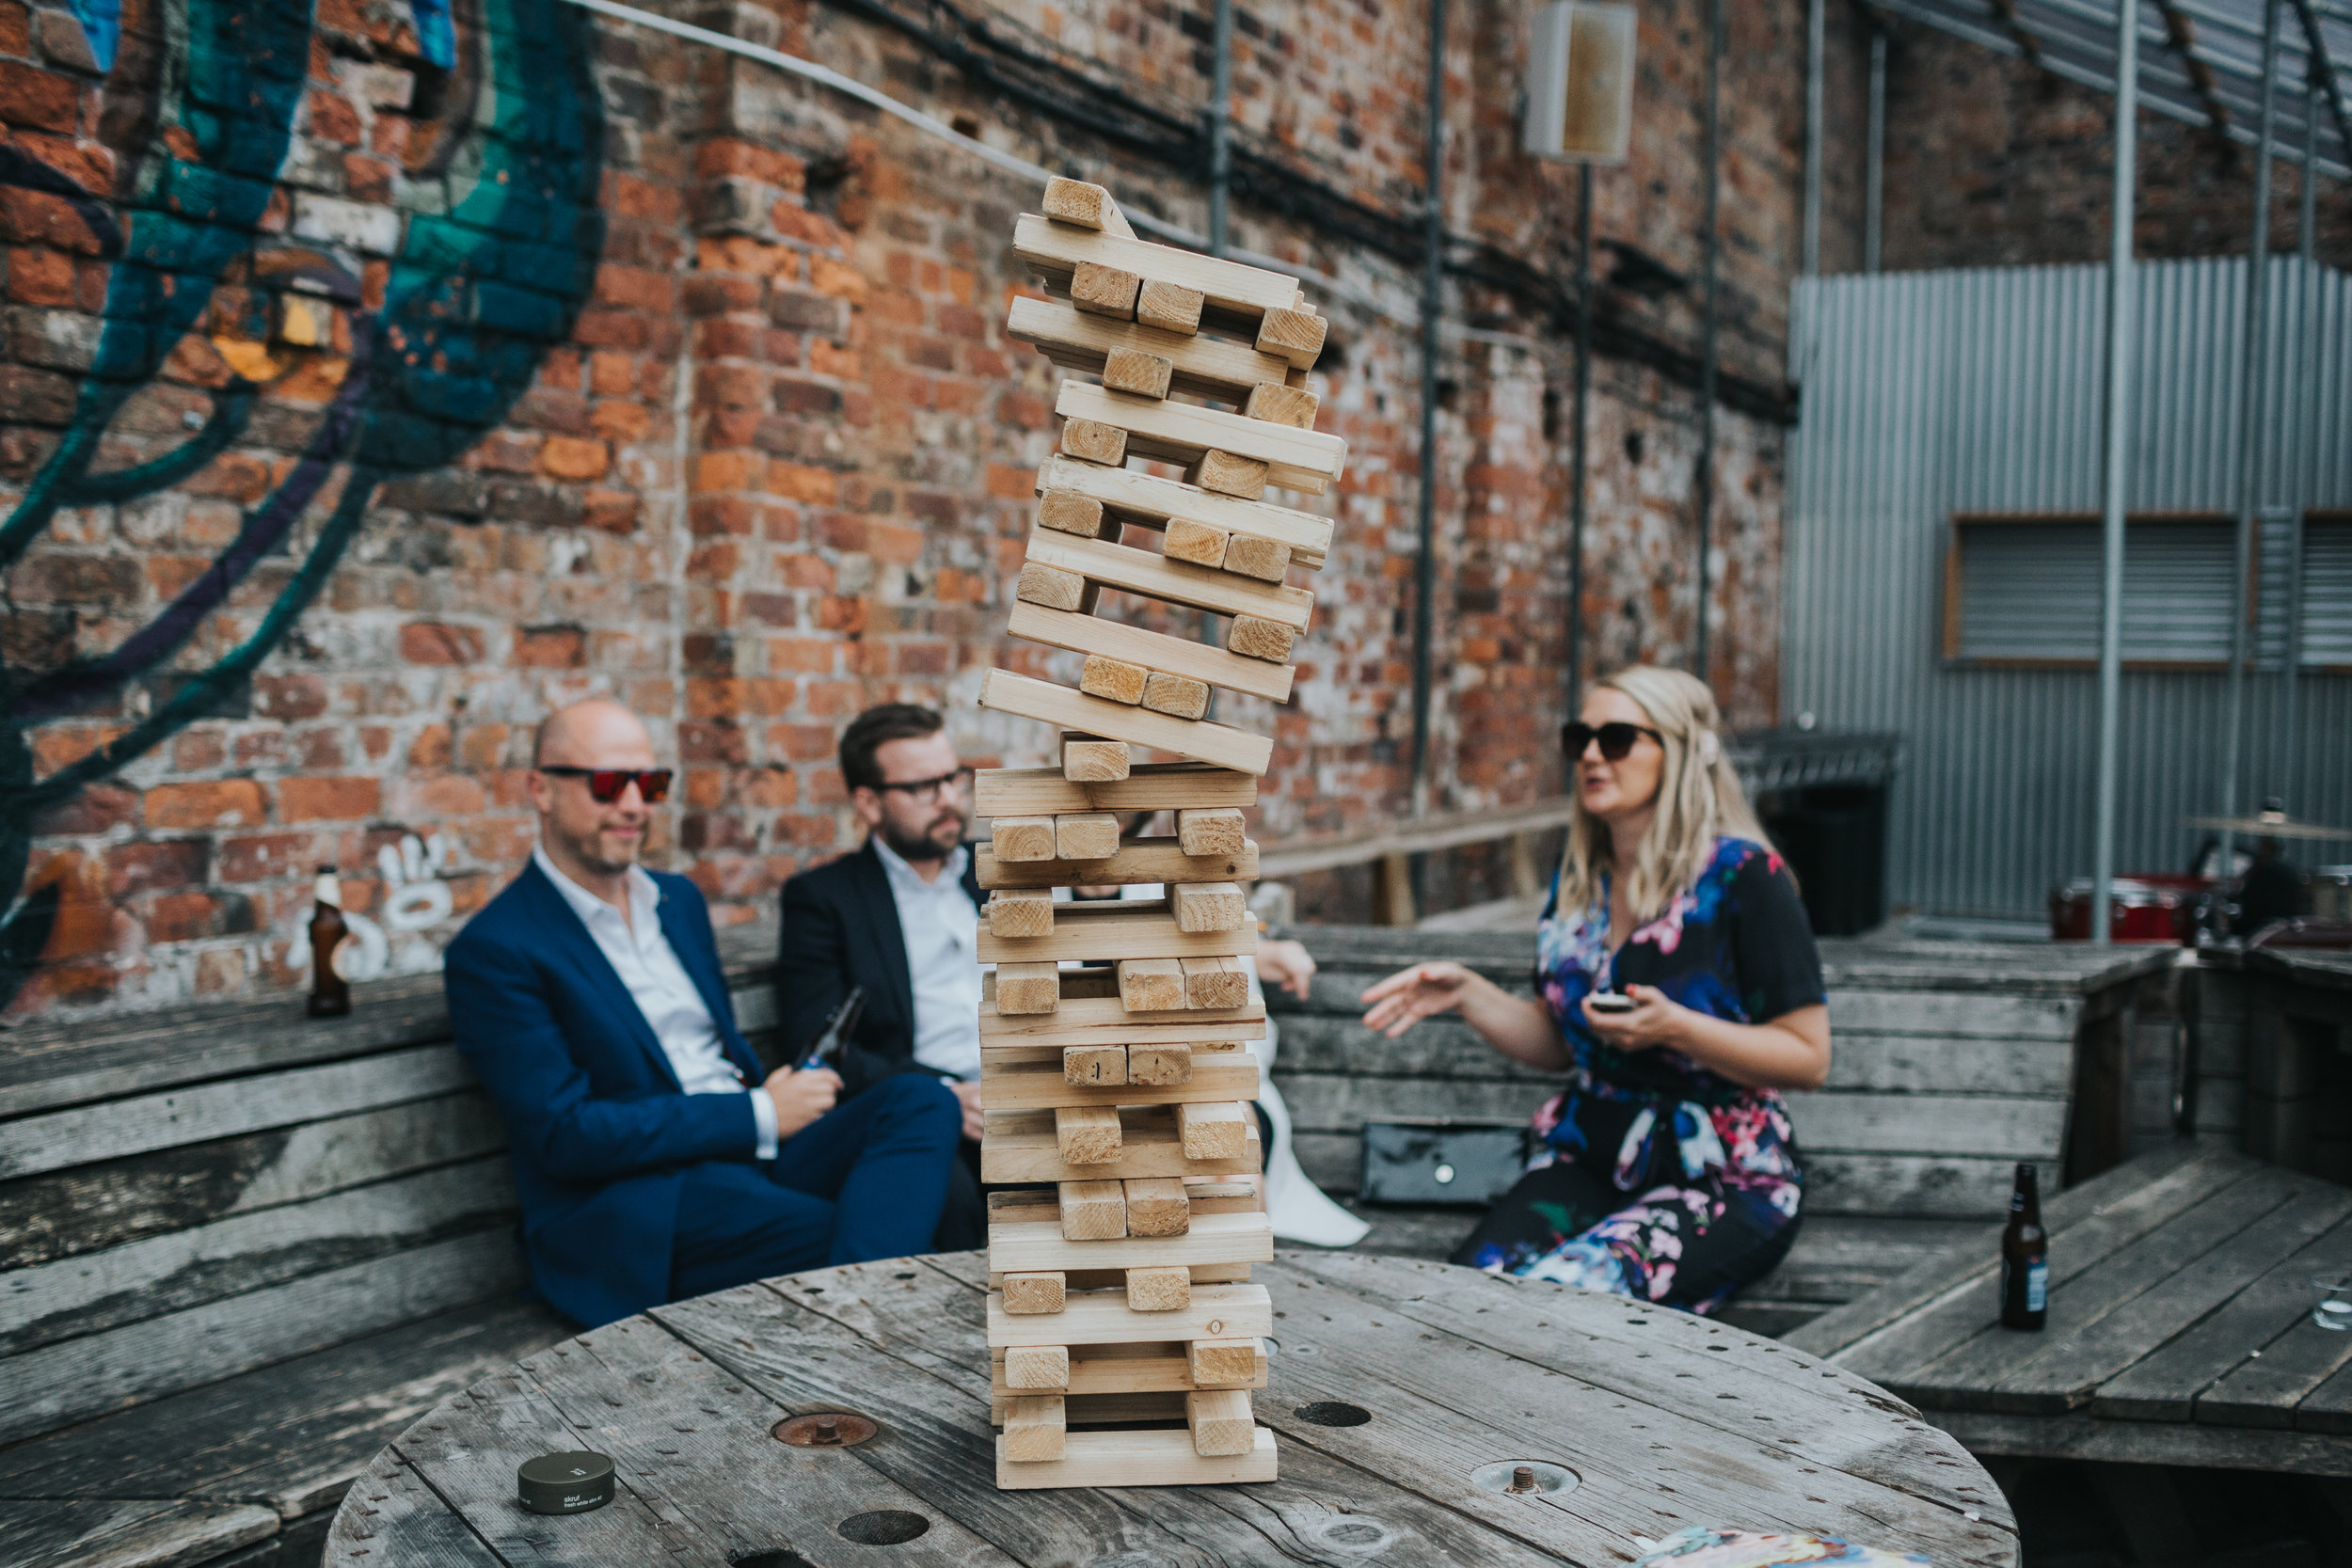 Guests sit nervously next to a precariously stacked Jenga tower.